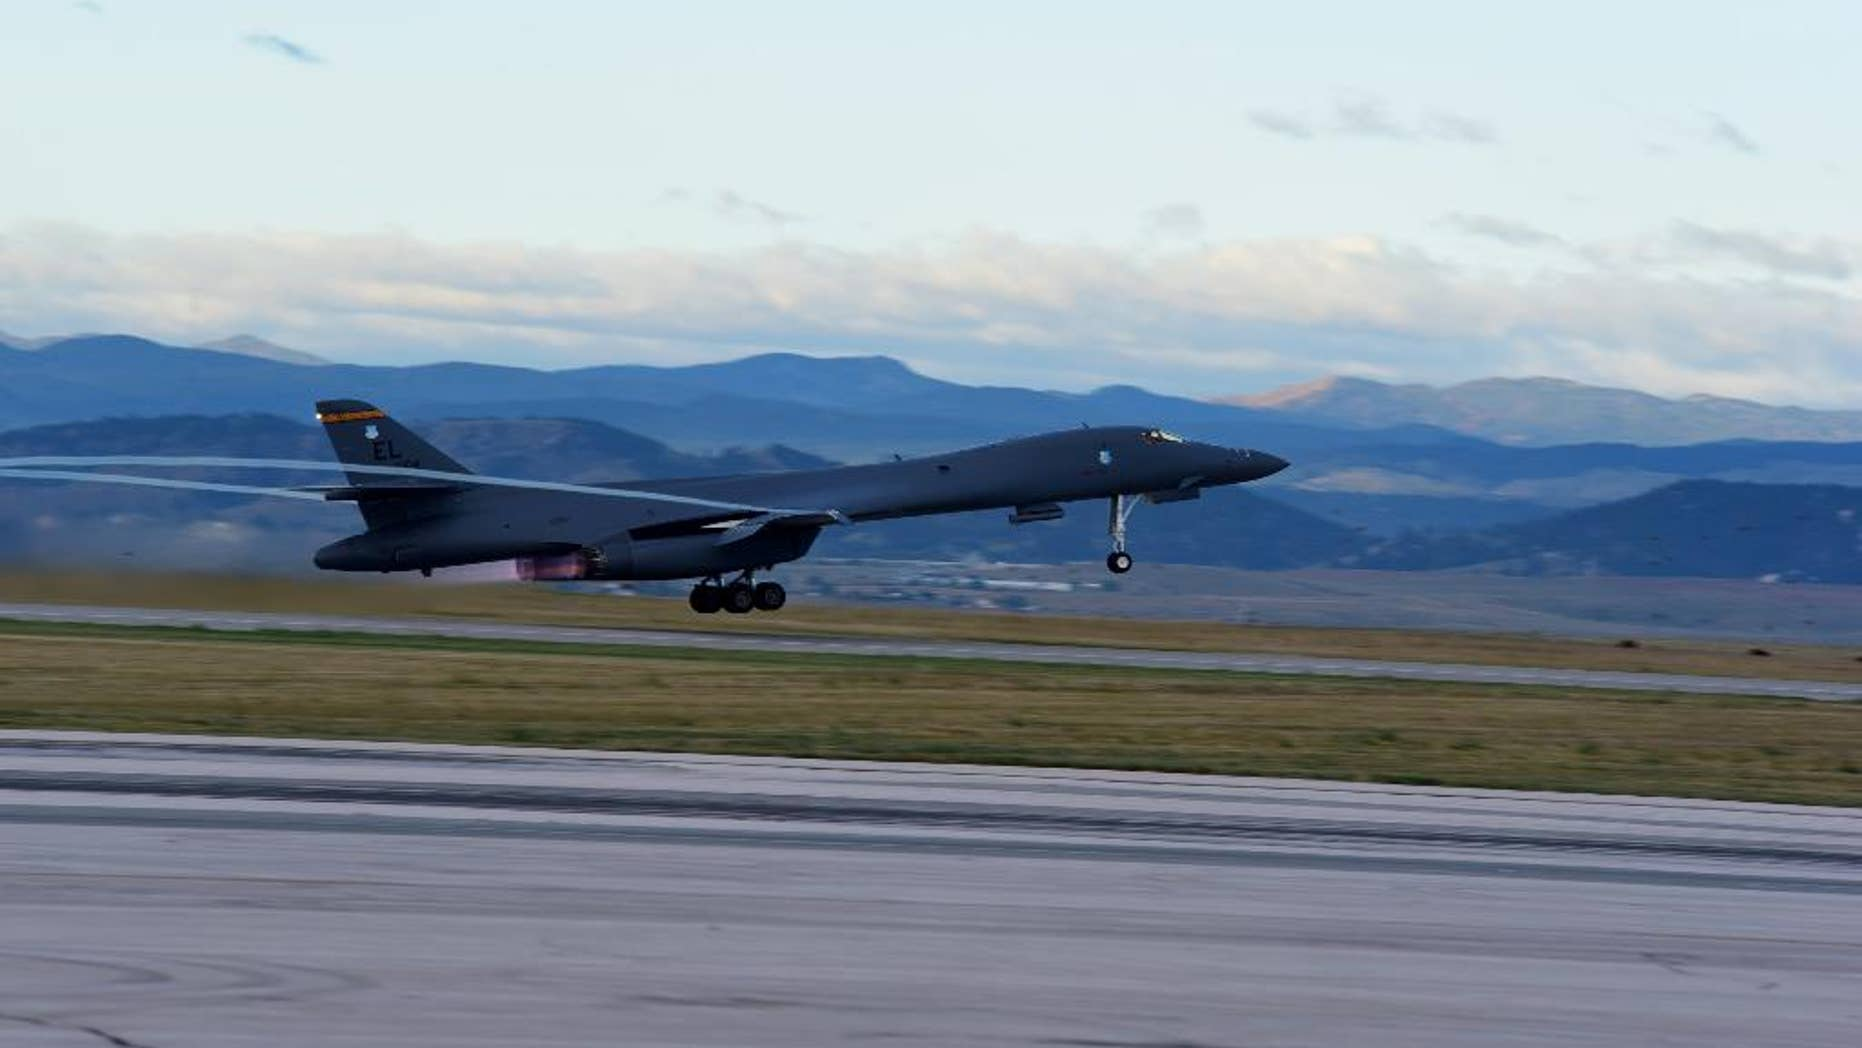 A U.S. Air Force plane takes off from Ellsworth Air Force Base for the first training mission in the expanded Powder River Training Complex over the northern Plains, Friday, Sept. 18, 2015, in South Dakota. The expansion of the Powder River Training Complex over the Dakotas, Montana and Wyoming roughly quadruples the training airspace to span nearly 35,000 square miles, making it the largest over the continental U.S. Flight operations began after the Federal Aviation Administration finished mapping work on the expanded airspace, a spokeswoman for the 28th Bomb Wing at Ellsworth Air Force Base said. (Airman 1st Class James Miller/U.S. Air Force via AP)